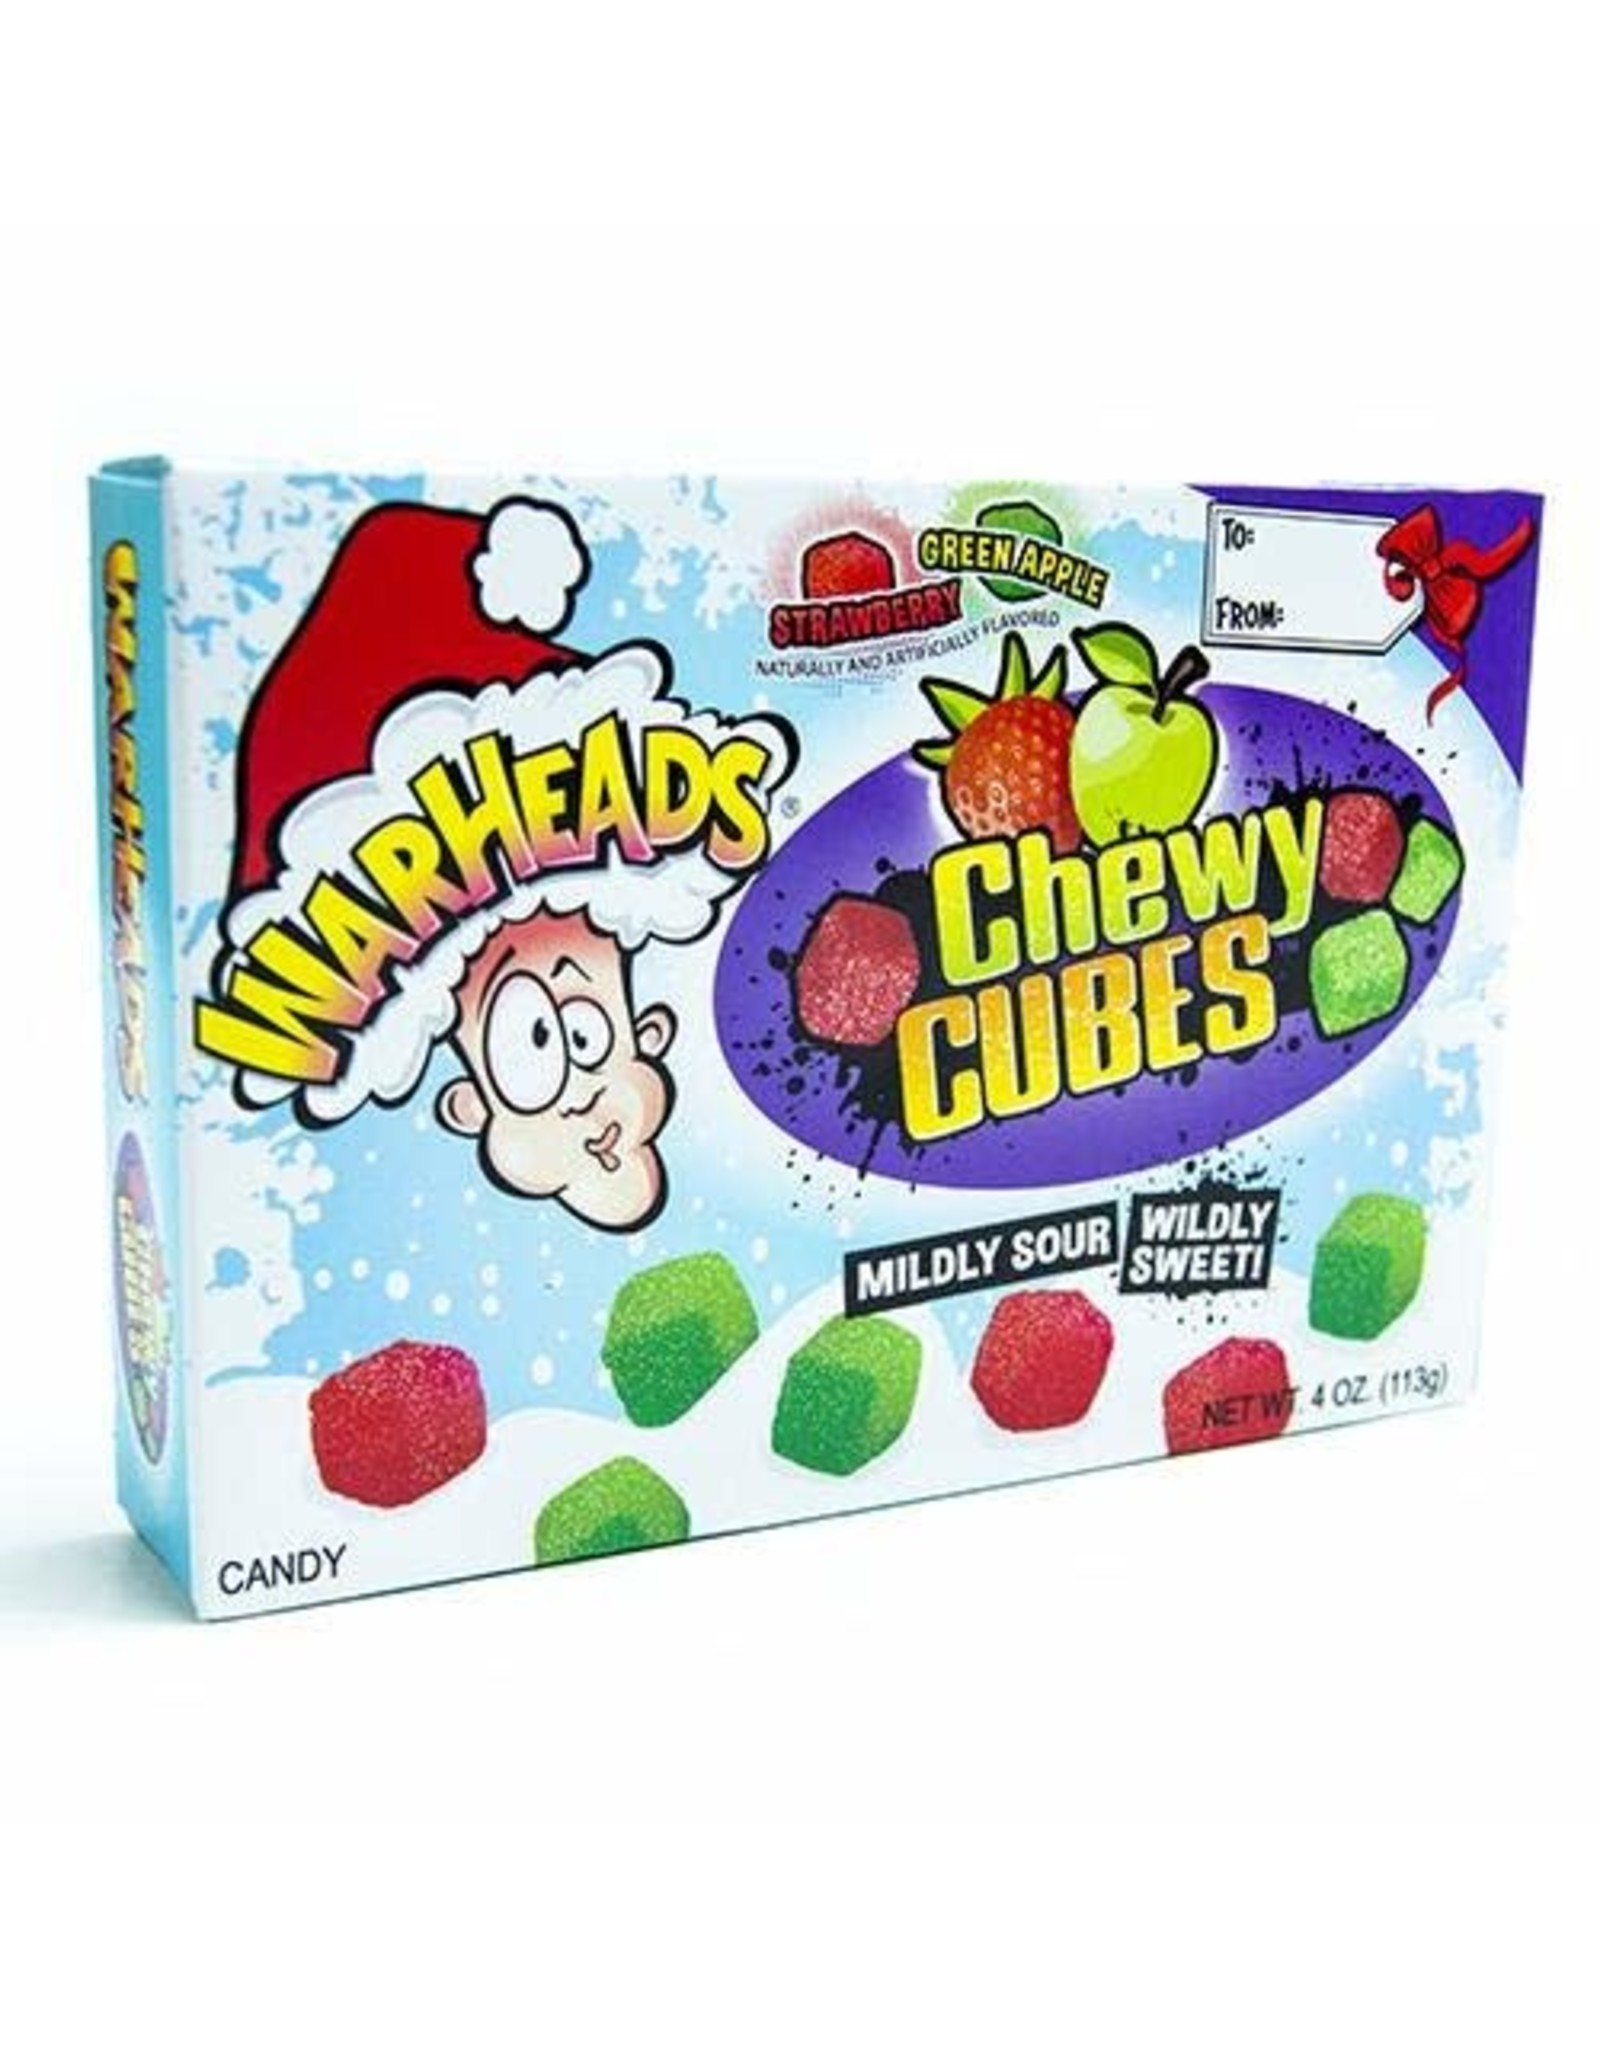 Warheads Holiday Chewy Cubes - 113g